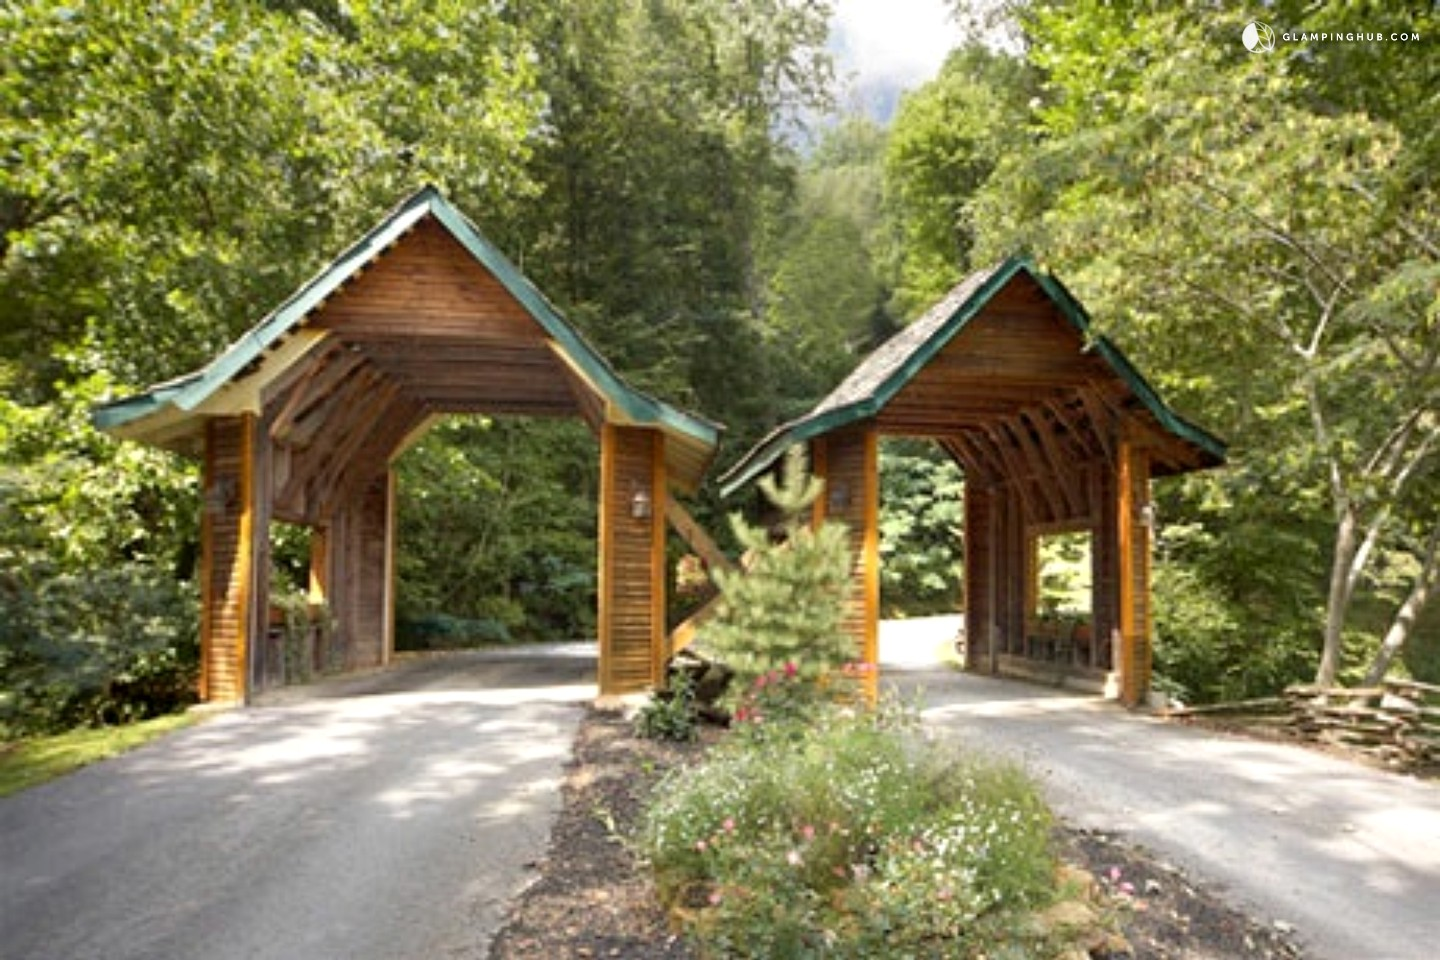 Log cabin rental near knoxville for Great american log homes